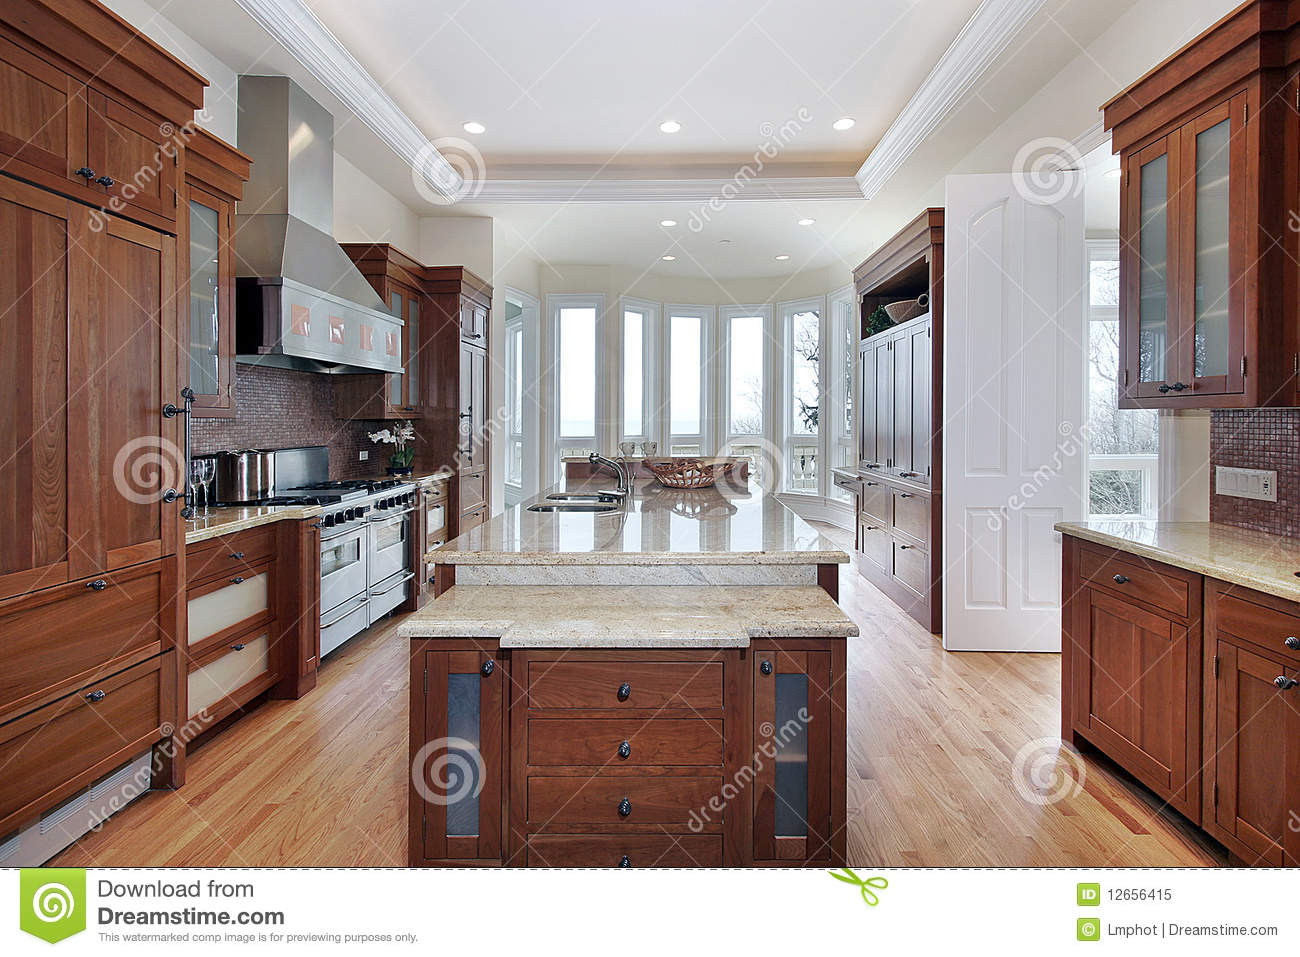 kitchen sink styles cabinet pantry kitchenn with recessed ceiling royalty free stock photo ...